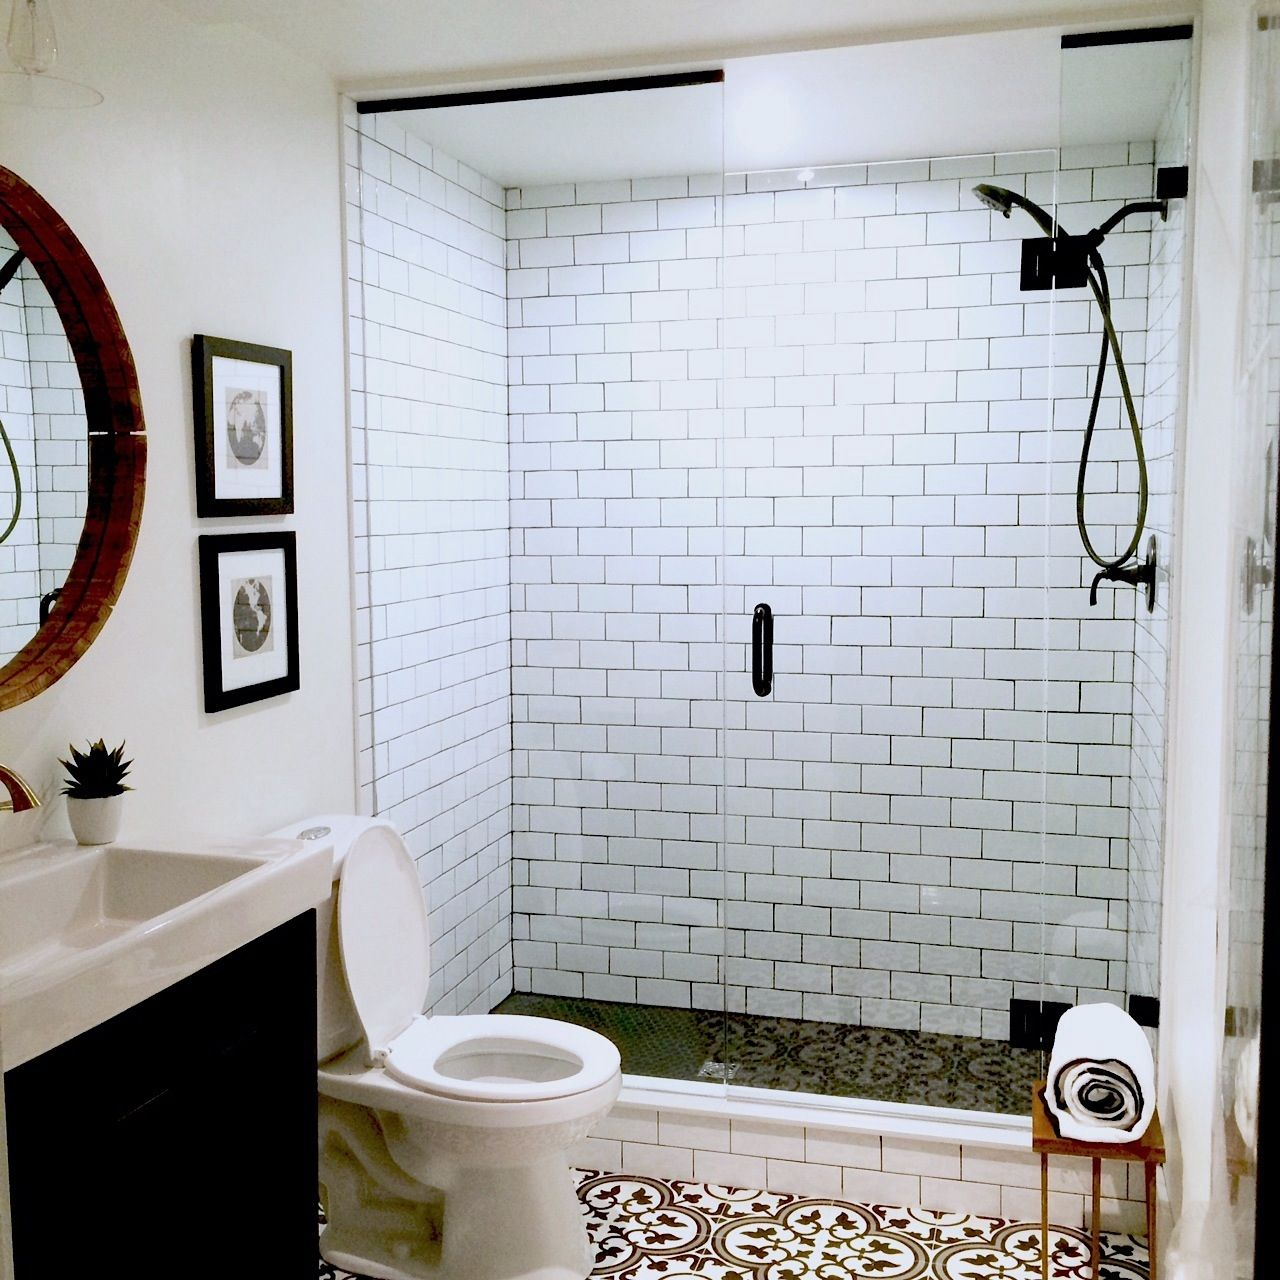 Bathroom Reveal - Gastro-pub Style Bathroom | Gastro pubs, Cement ...